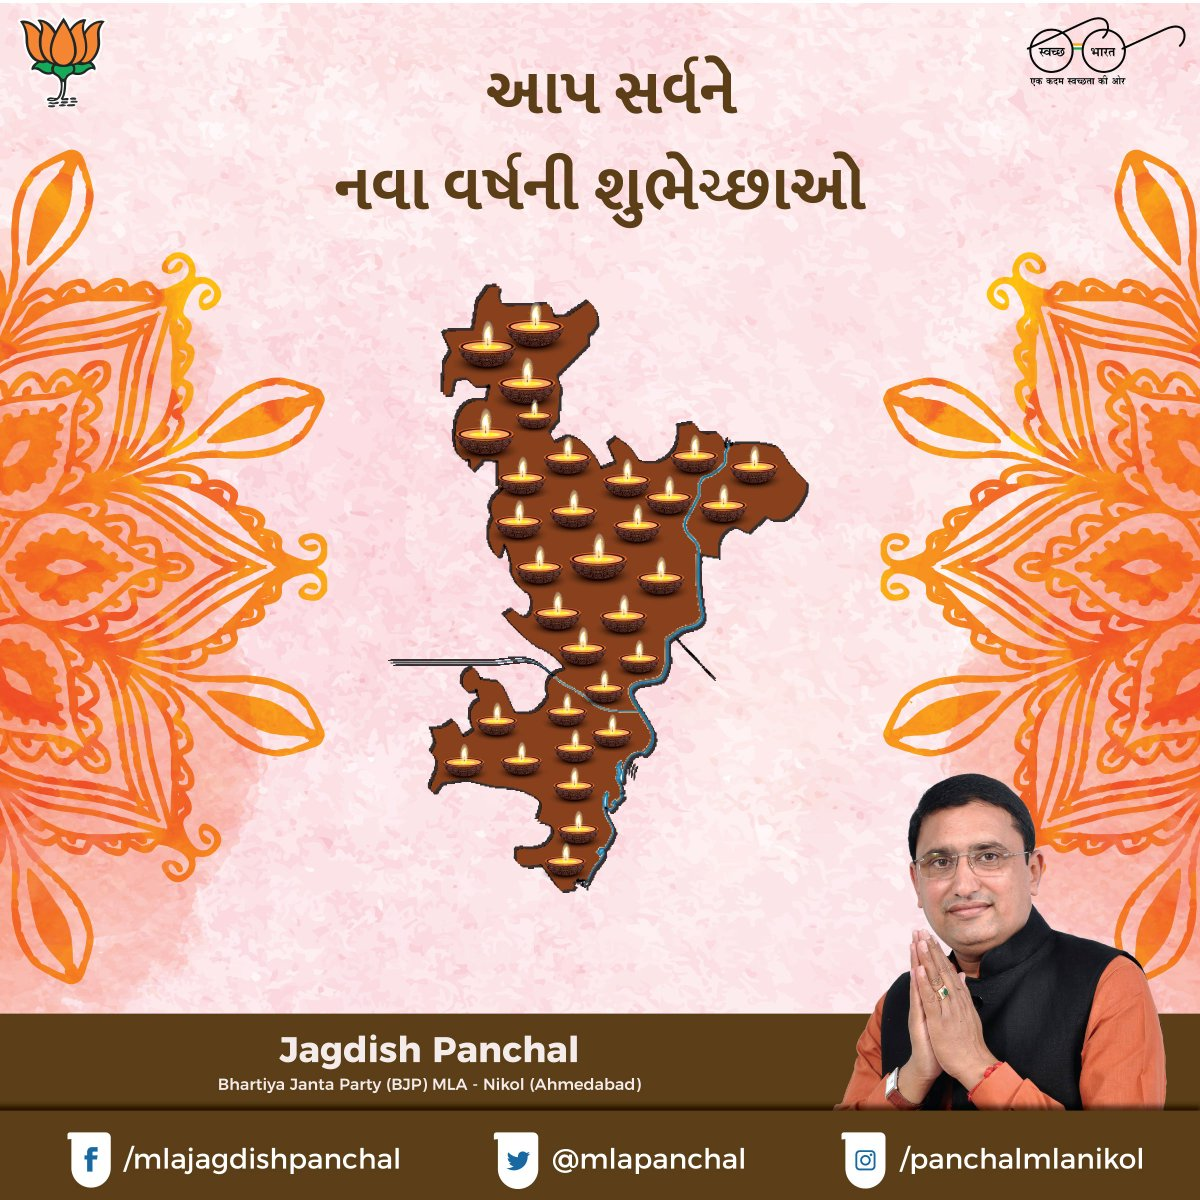 May every day of new year glow with good cheer &amp; happiness for u &amp; ur family. #HappyNewYear #jagdish_panchal #bjp #mla #ahmedabad #gujarat<br>http://pic.twitter.com/Ne09DW7ebj